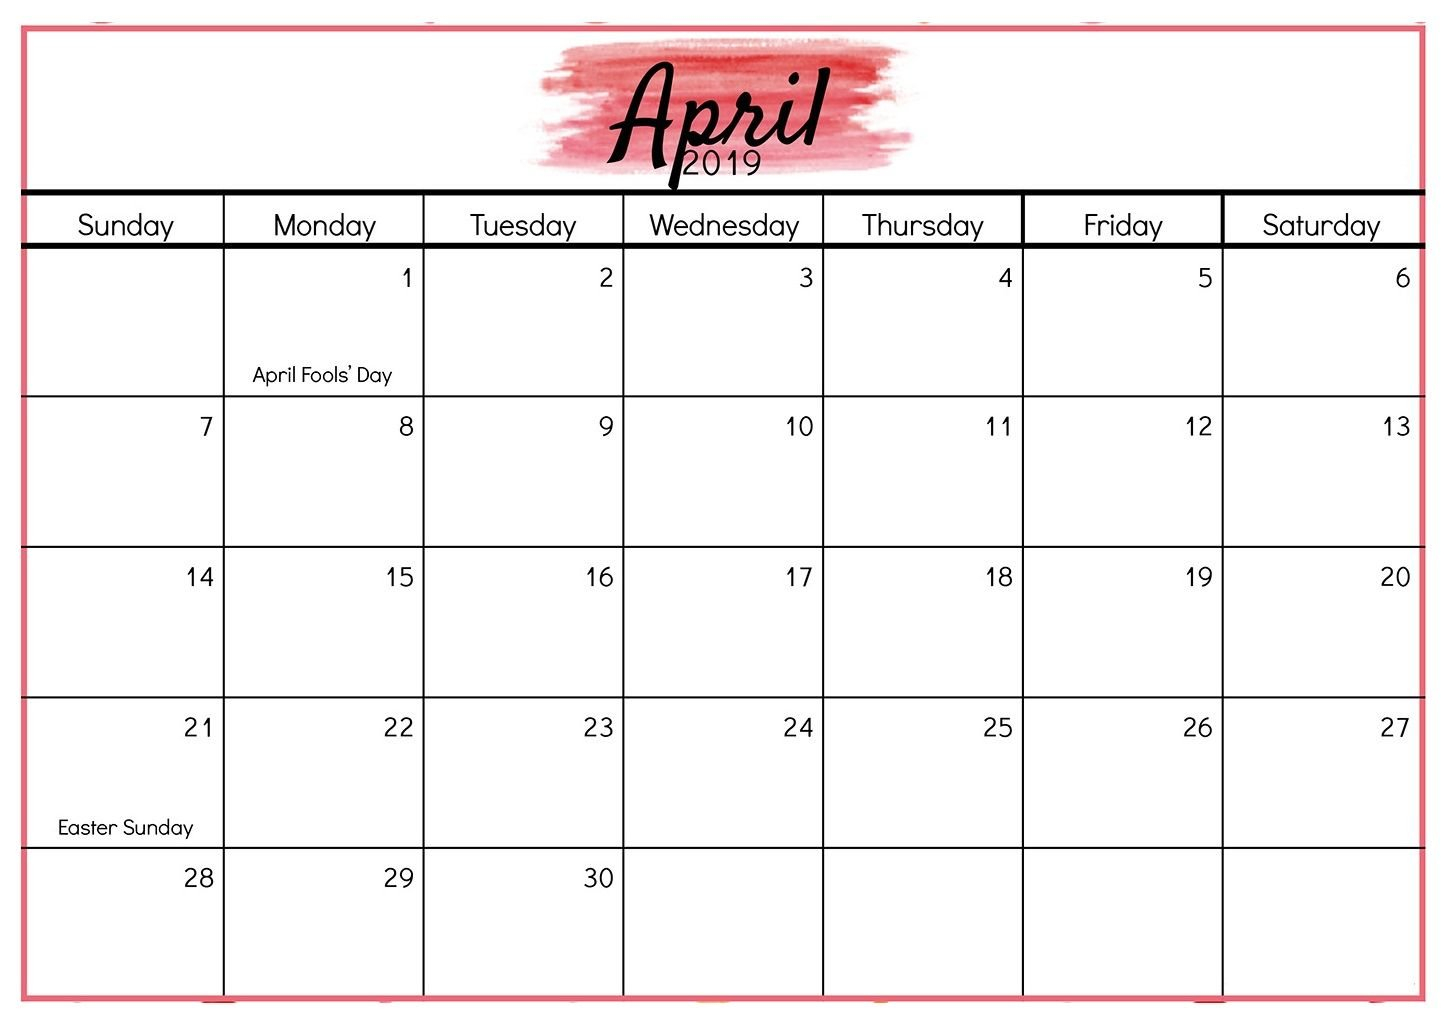 Editable April 2019 Word Calendar Templates | Calendar Calendar 2 Week Block Printable Free April